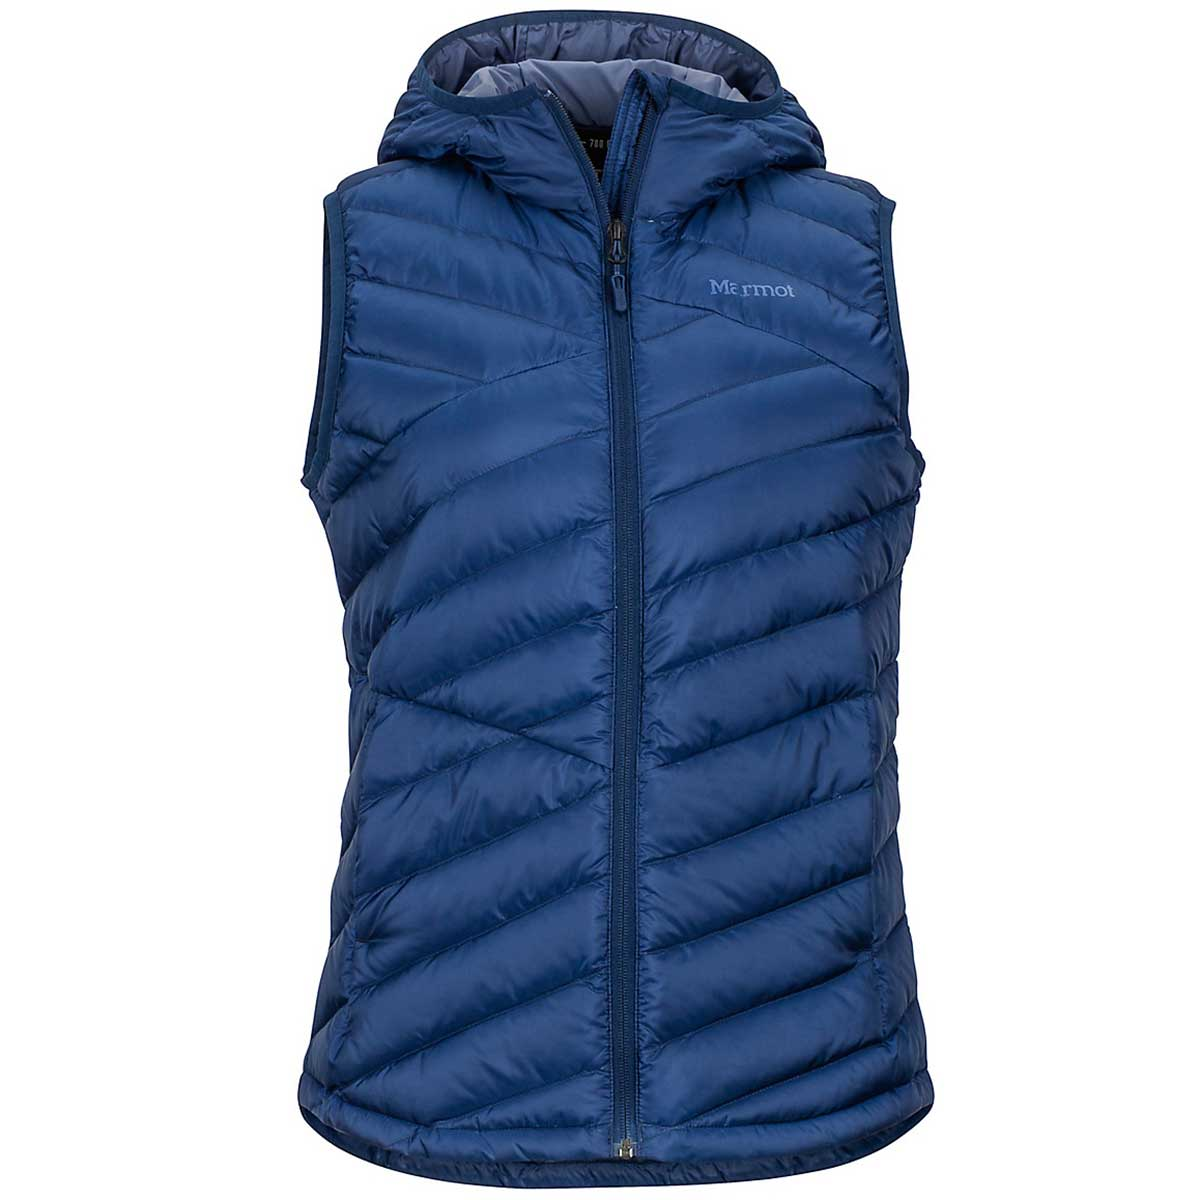 Marmot women's Highlander Hoody Vest in Arctic Navy front view